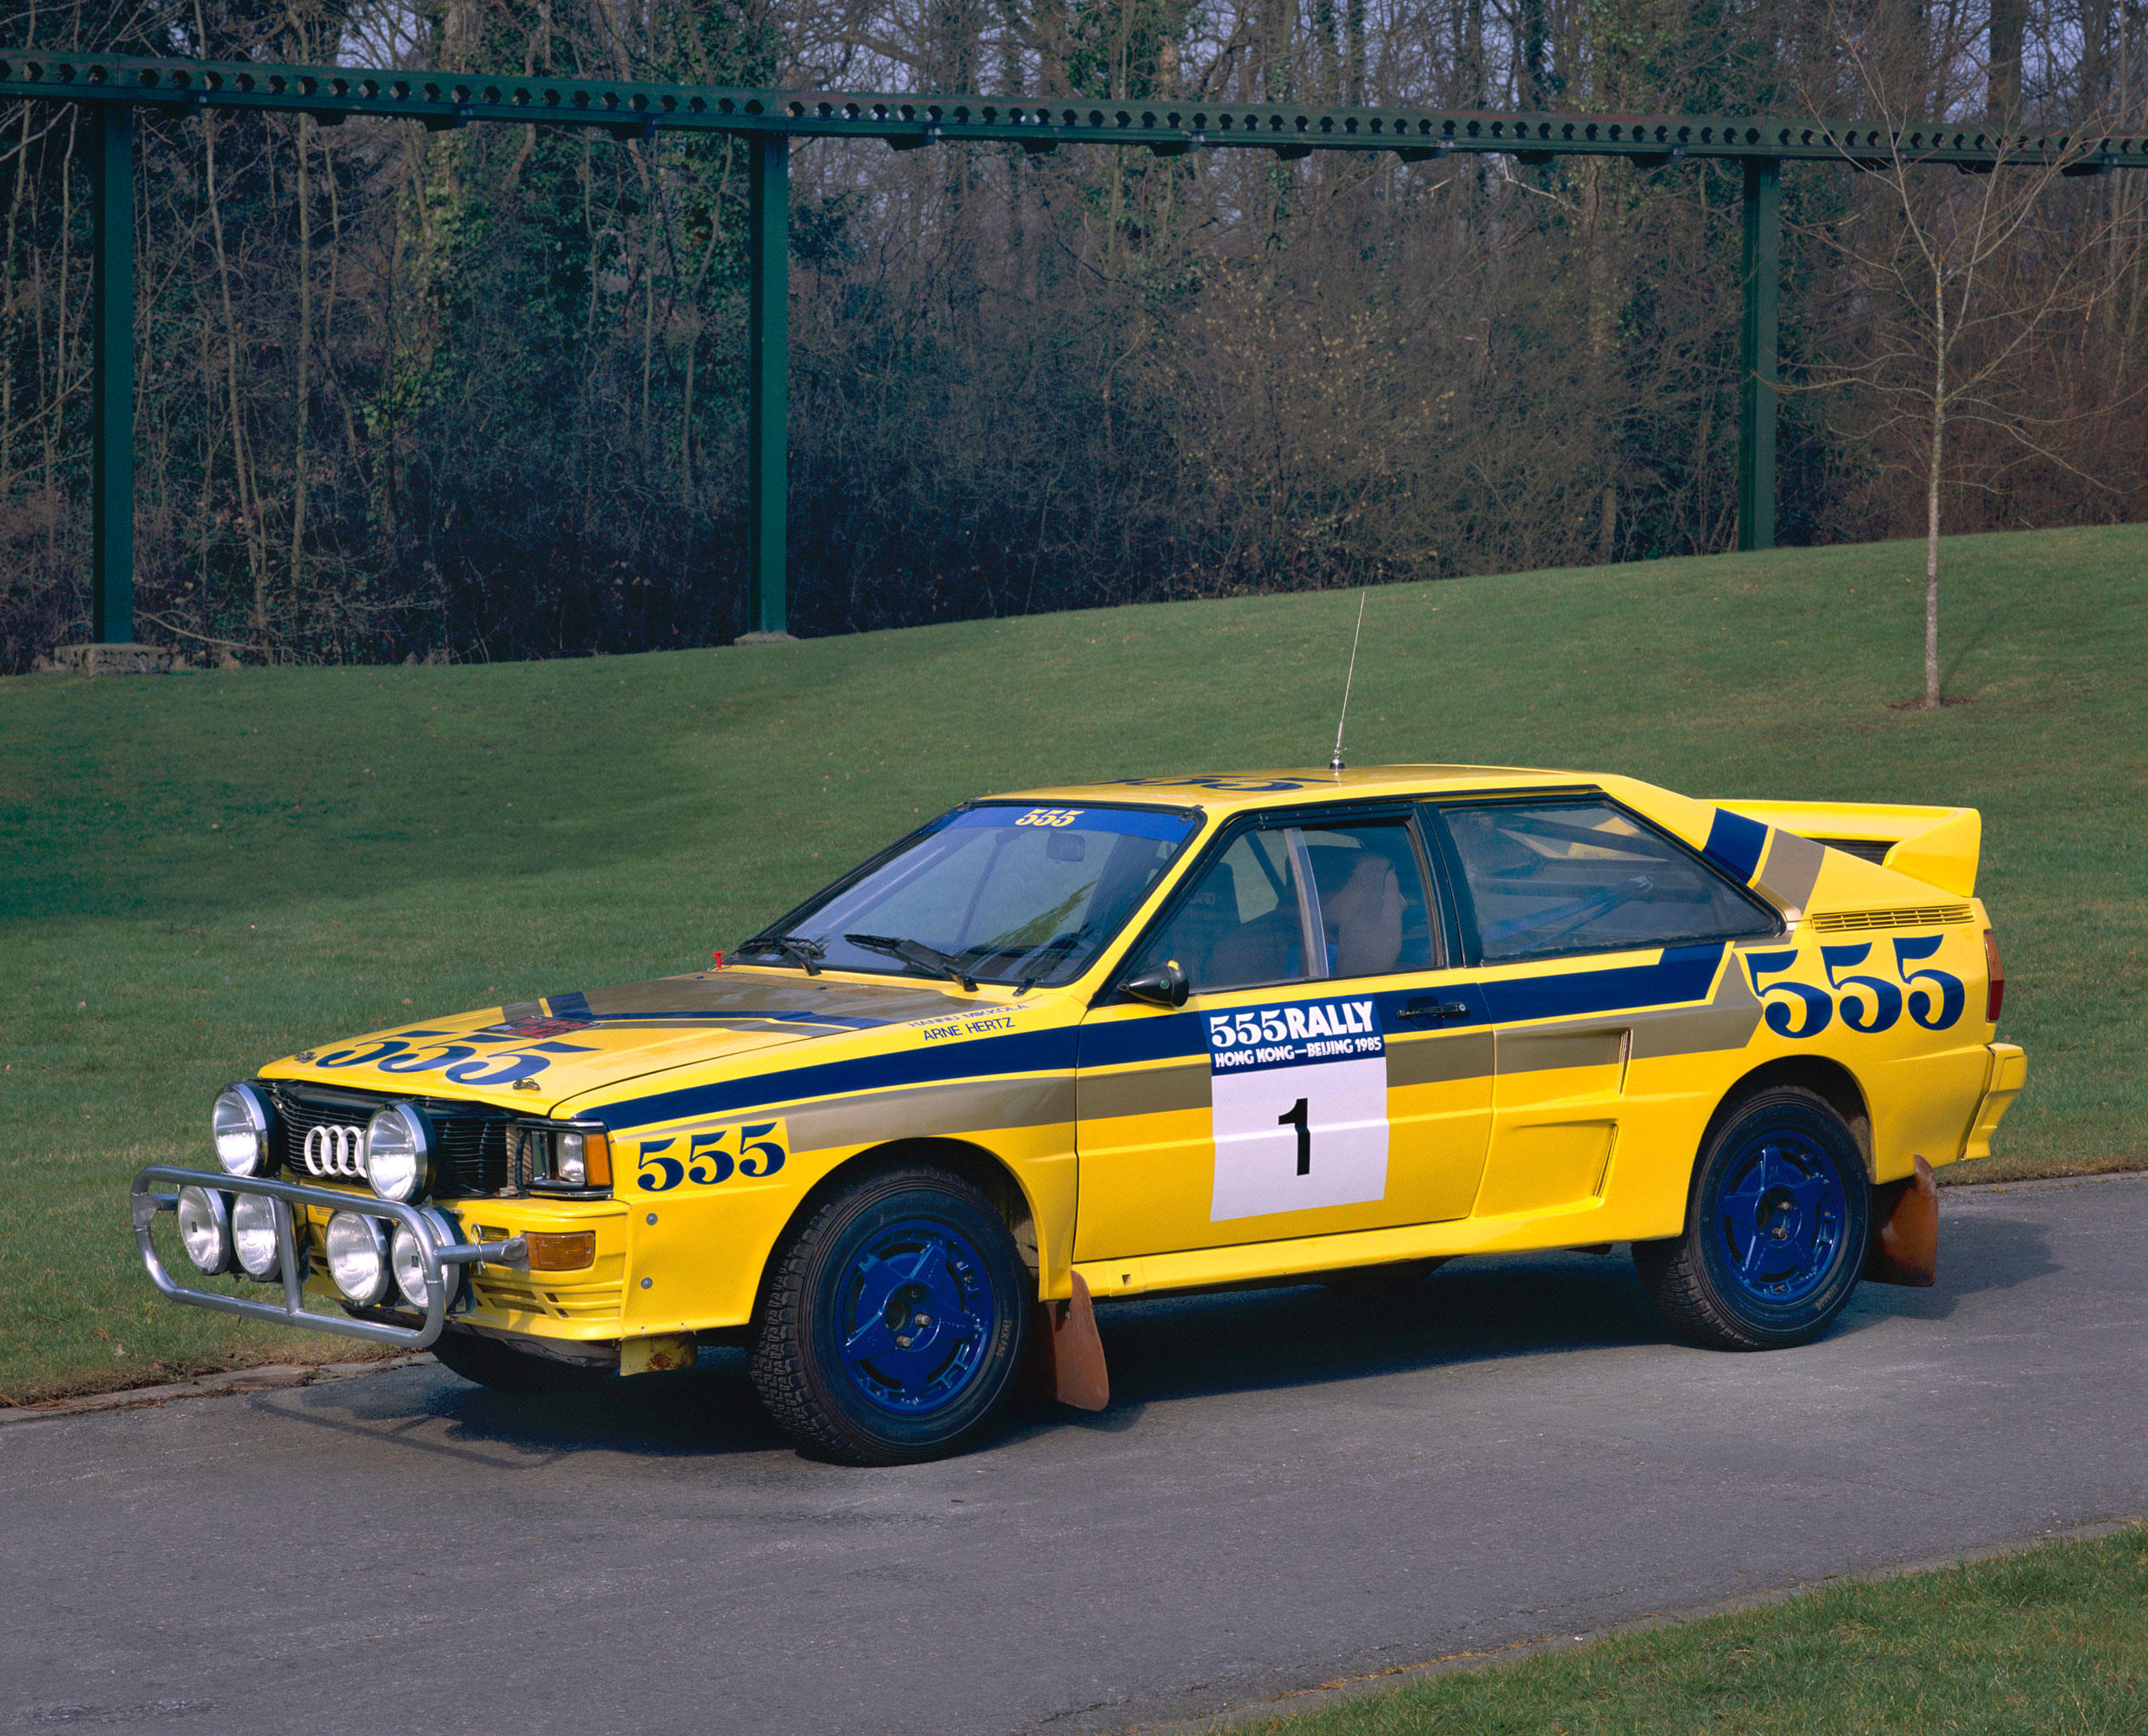 audi quattro a2 rally car the national motor museum trust. Black Bedroom Furniture Sets. Home Design Ideas